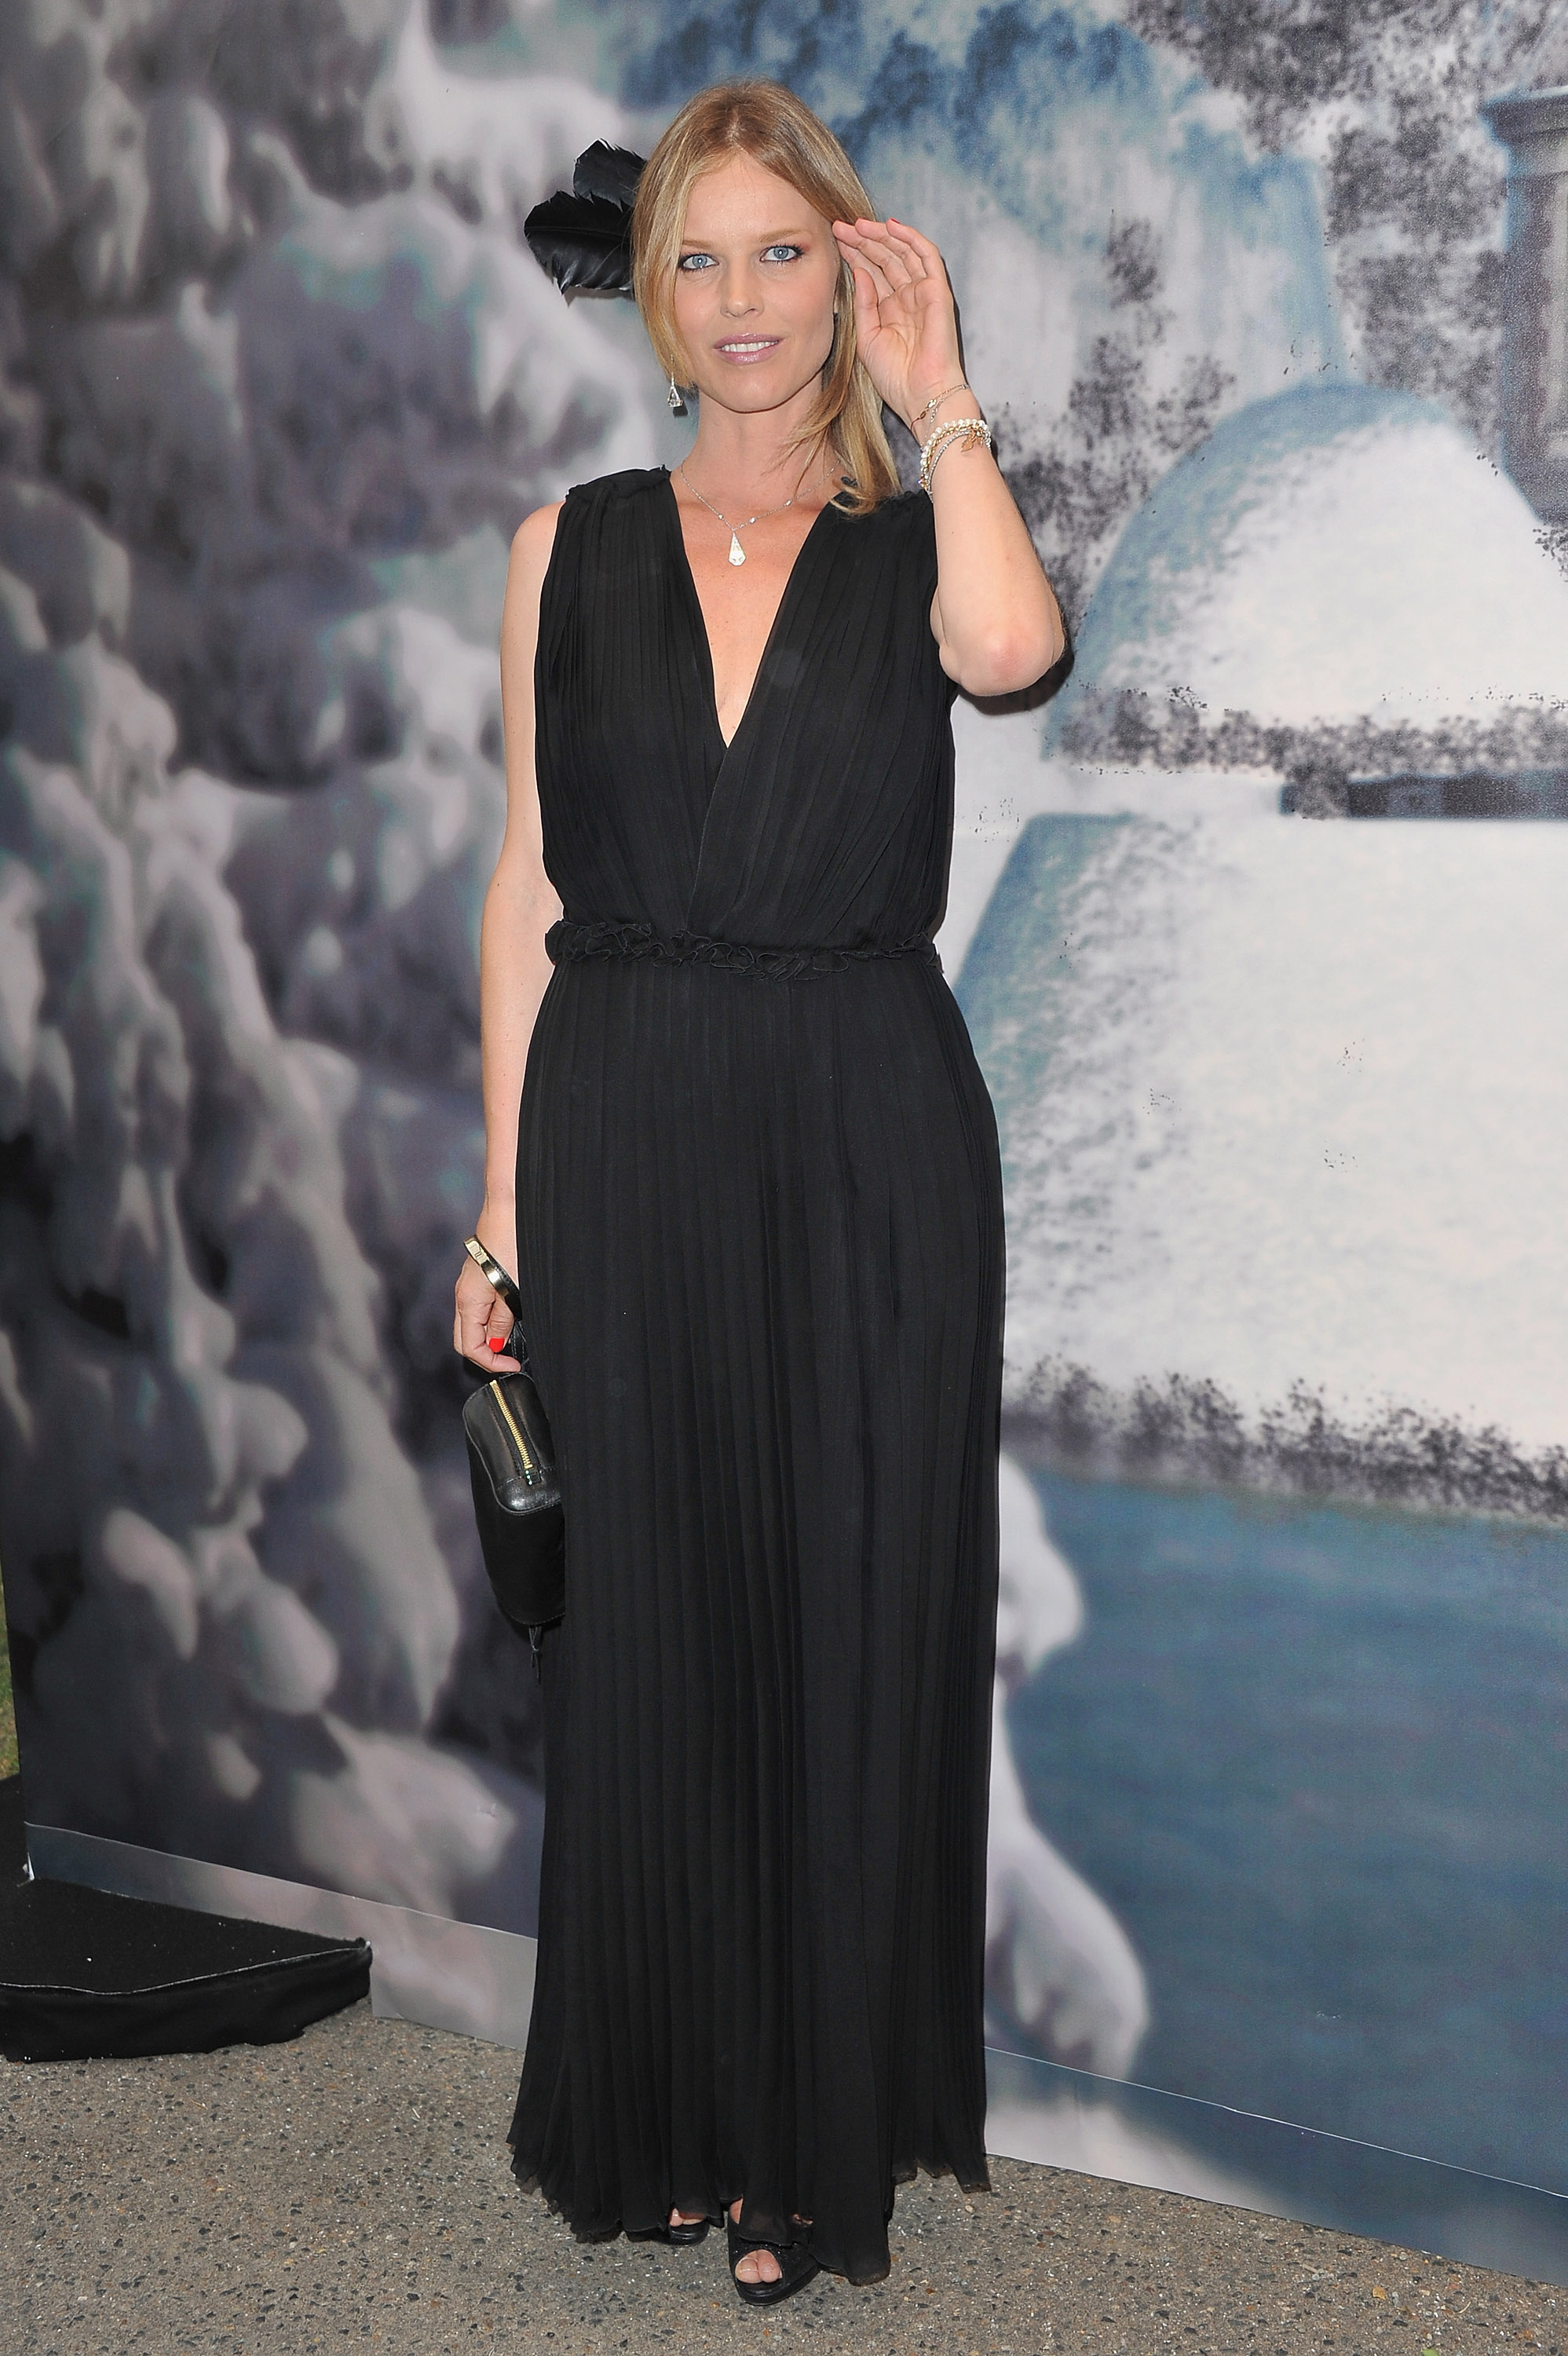 Eva Herzigova stuck to black for the Ball.